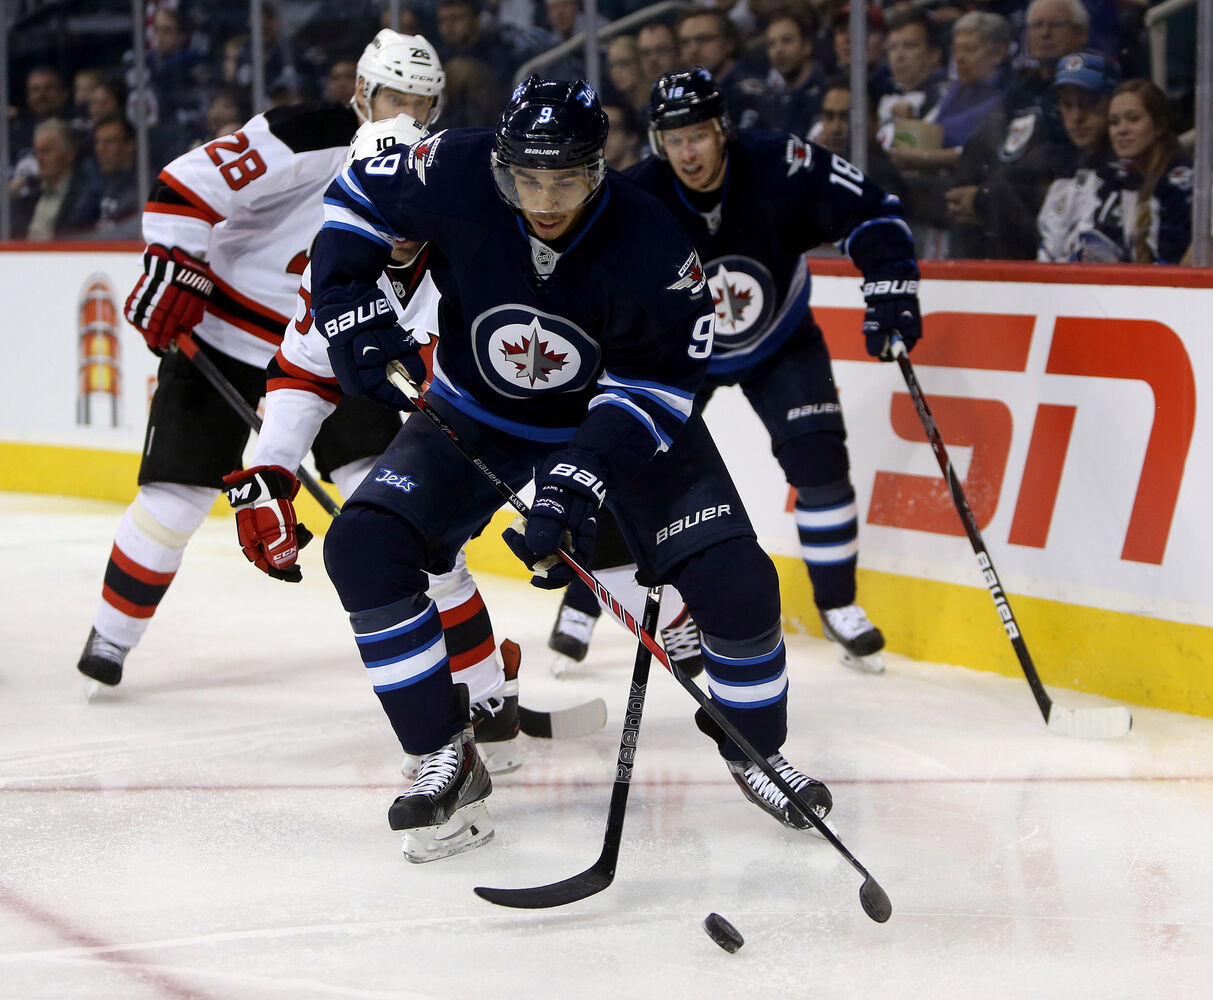 Evander Kane carries the puck the during second period. (Trevor Hagan / The Canadian Press)